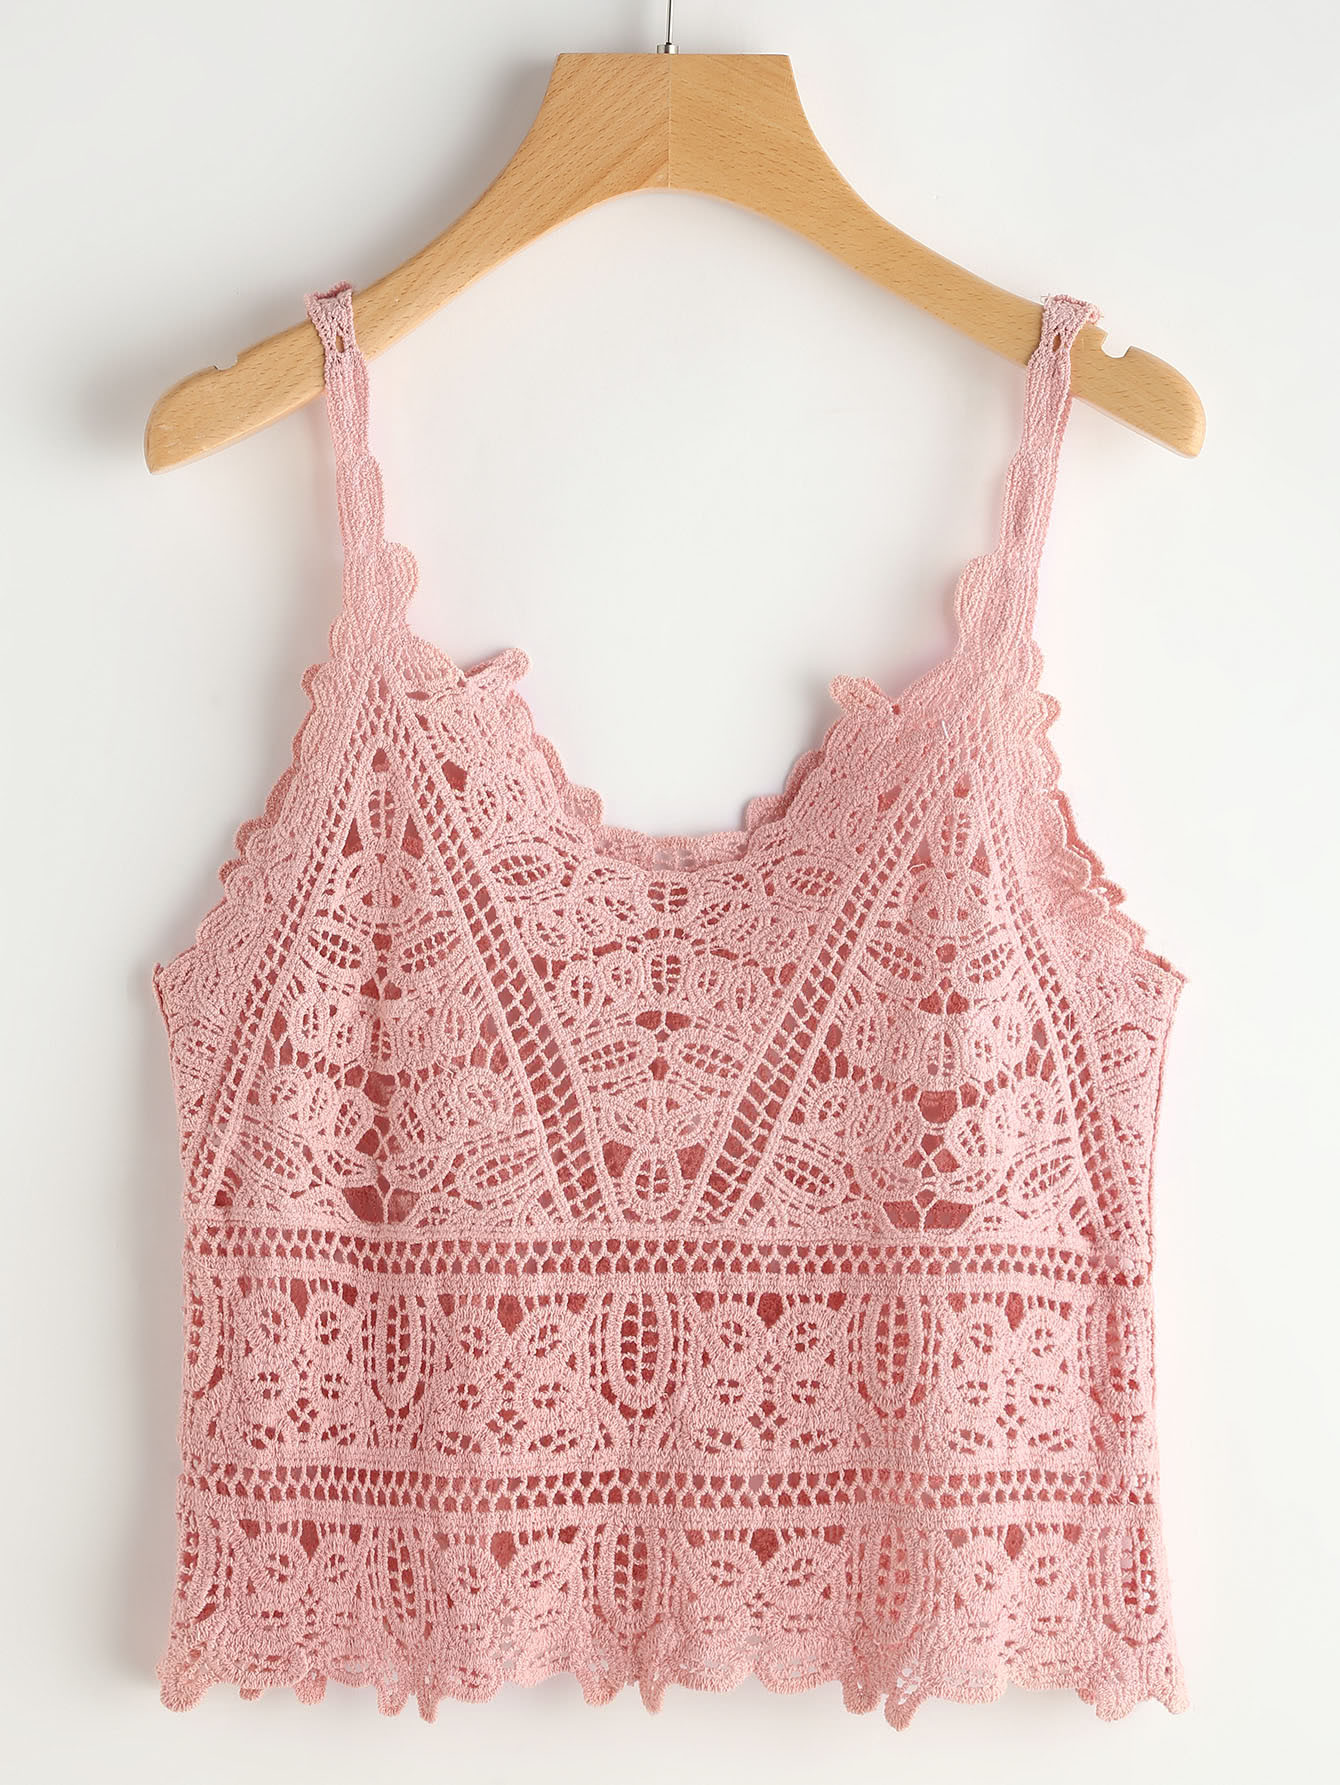 Lovely Crochet Lace Cami top Knitting Crochet Dıy Craft Crochet Lace Of Amazing 43 Photos Crochet Lace